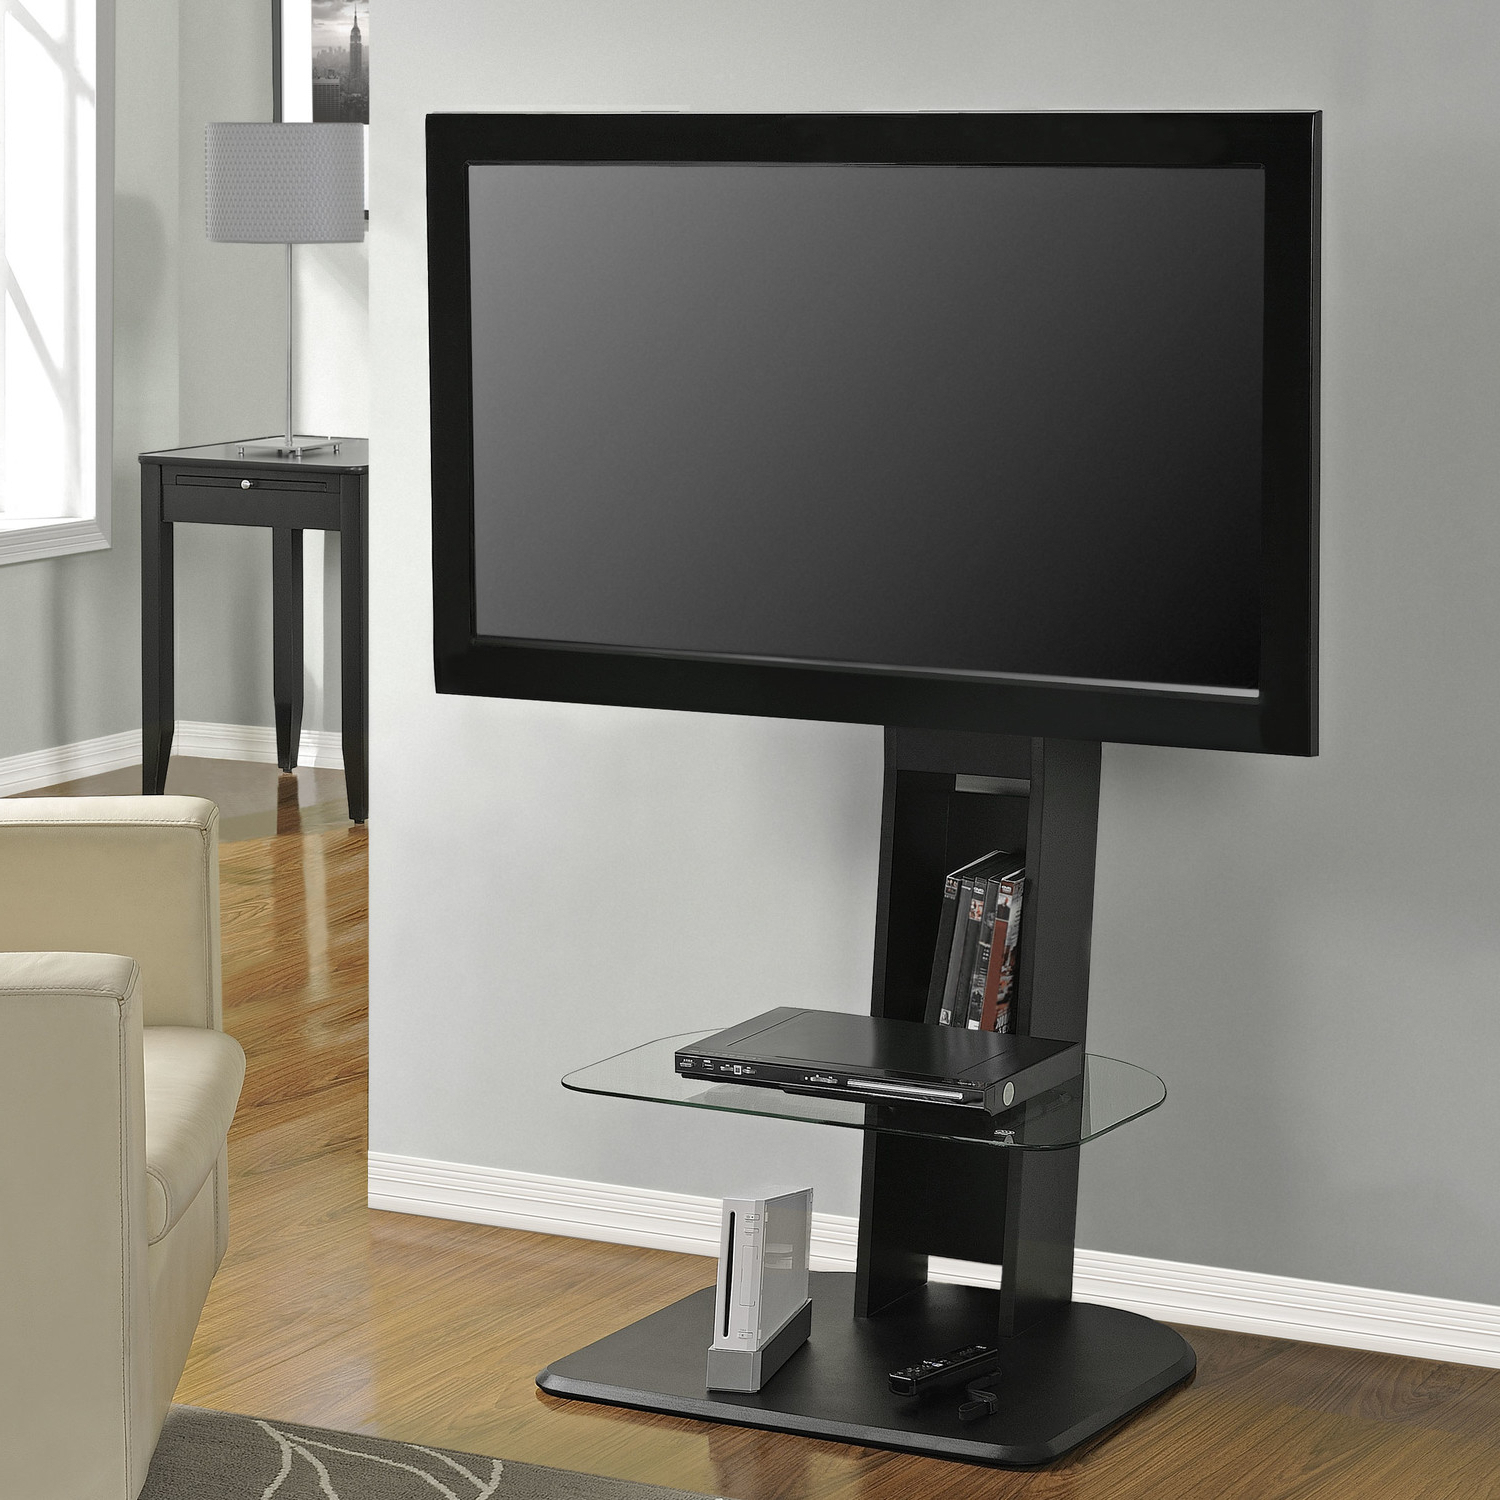 Freestanding Tv Stands Inside Newest Free Standing Stands Freestanding Coat Stand Retro Portable Deer (View 8 of 20)